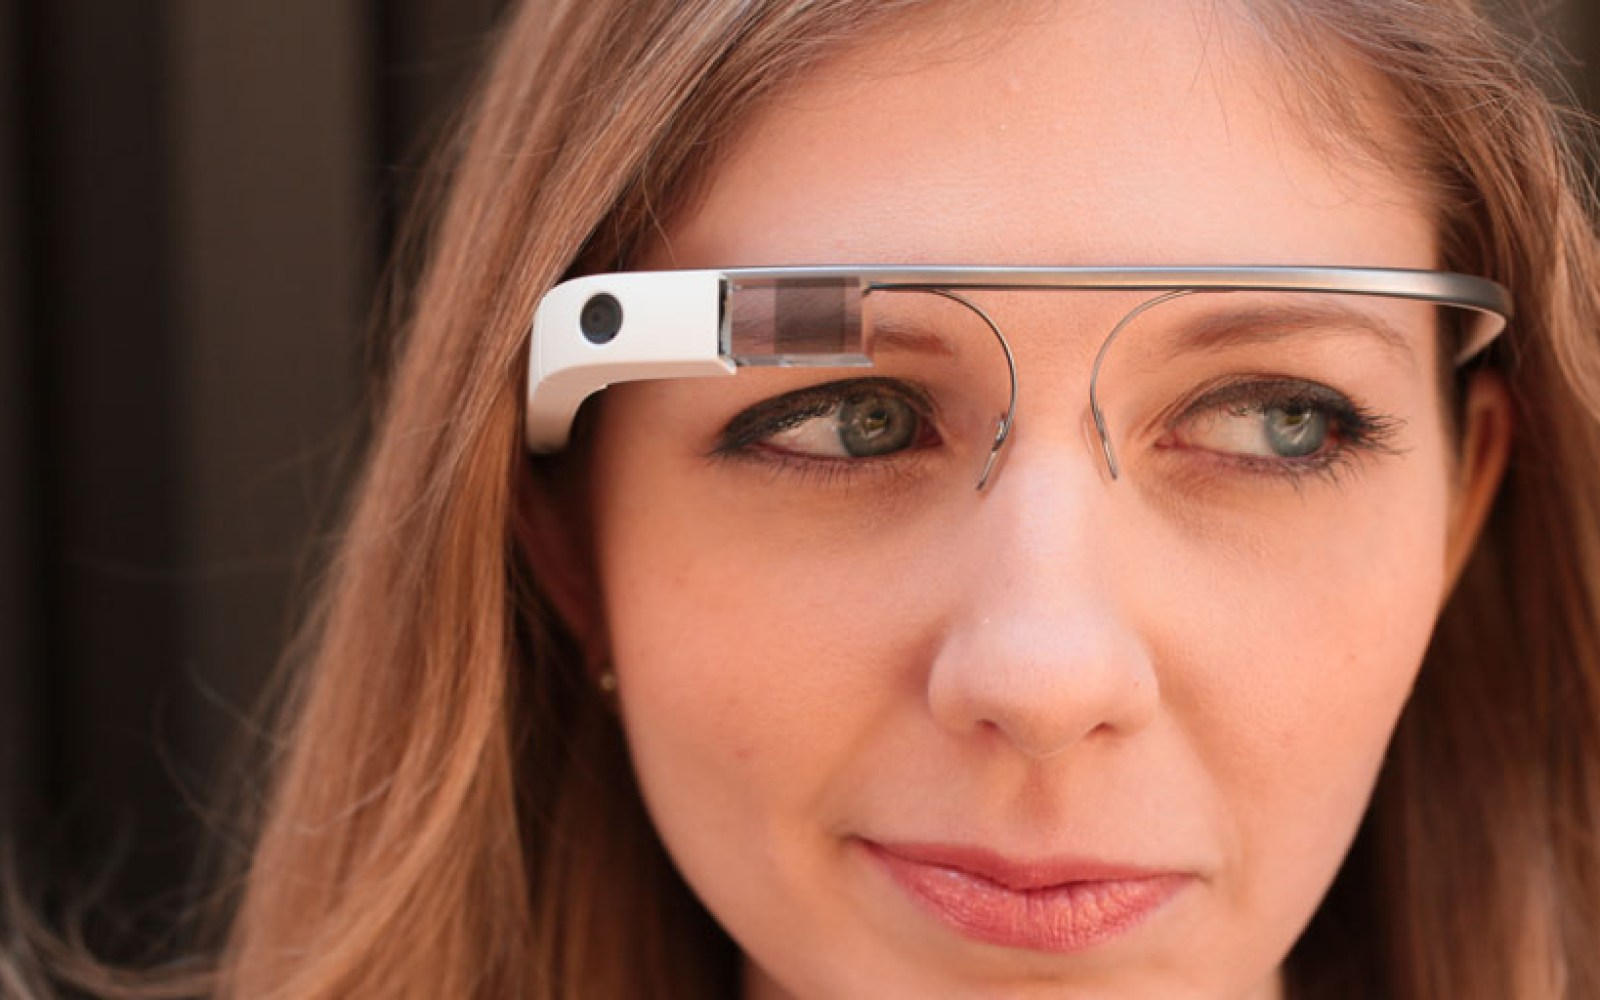 Report: Google Glass successor Project Aura bringing two screenless head-mounted devices